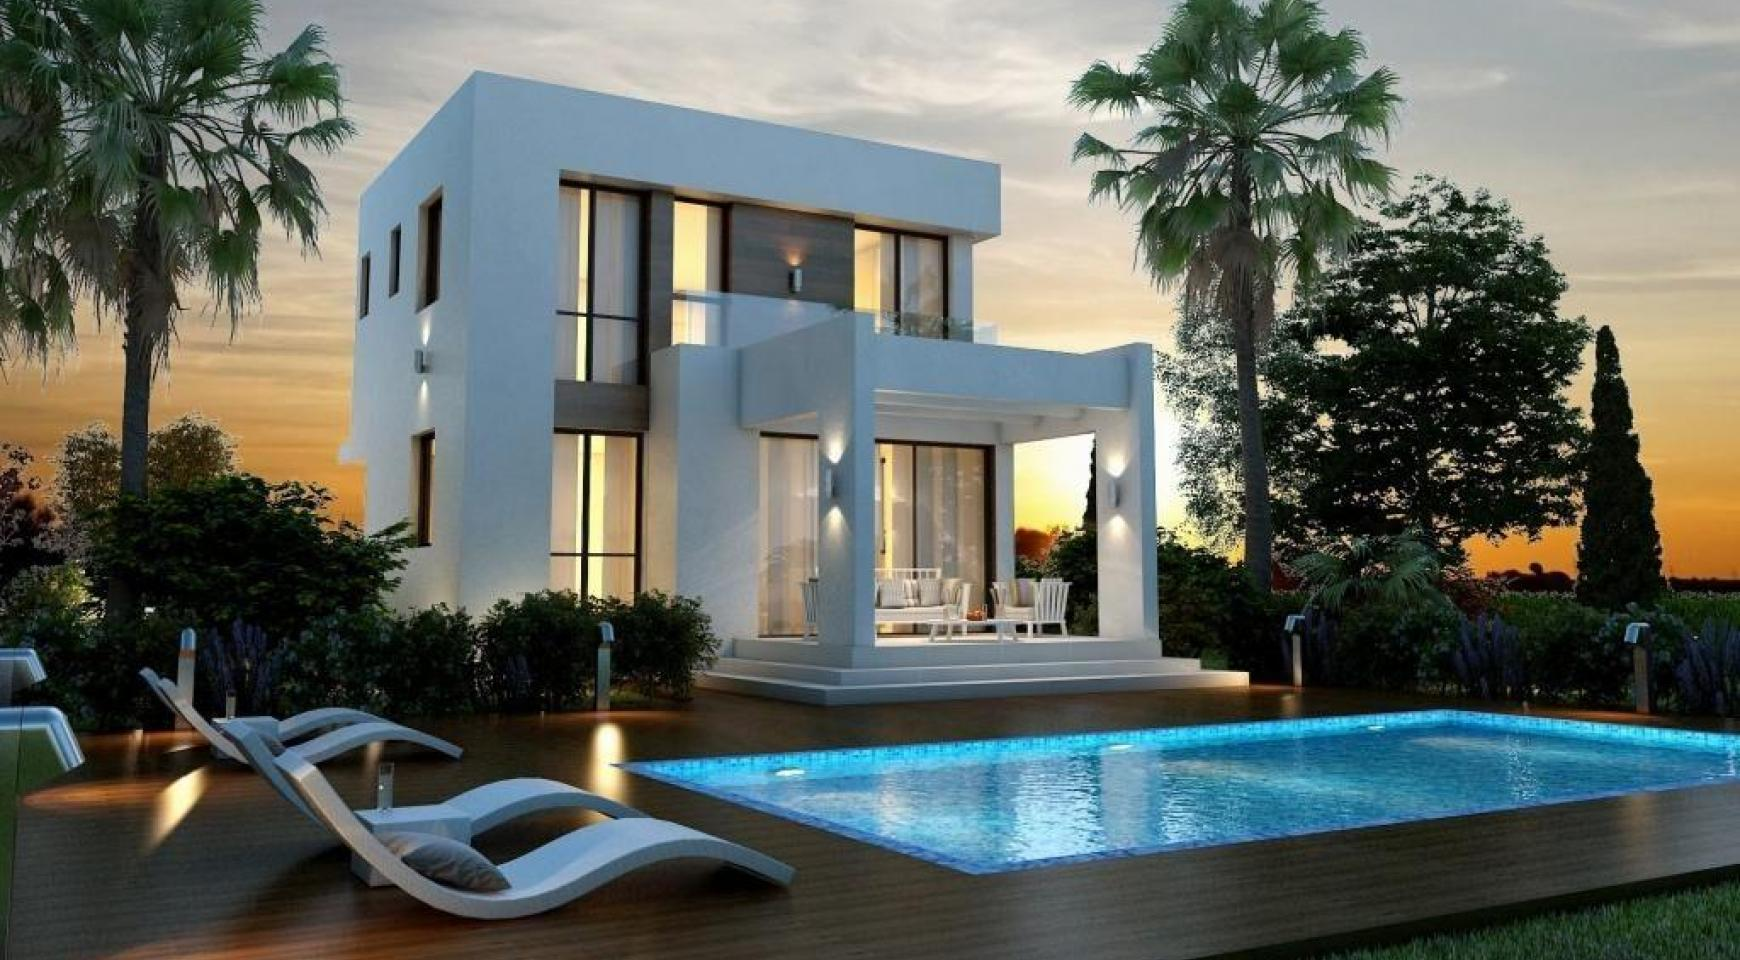 3 Bedroom Villa within a Complex near the Beach - 1